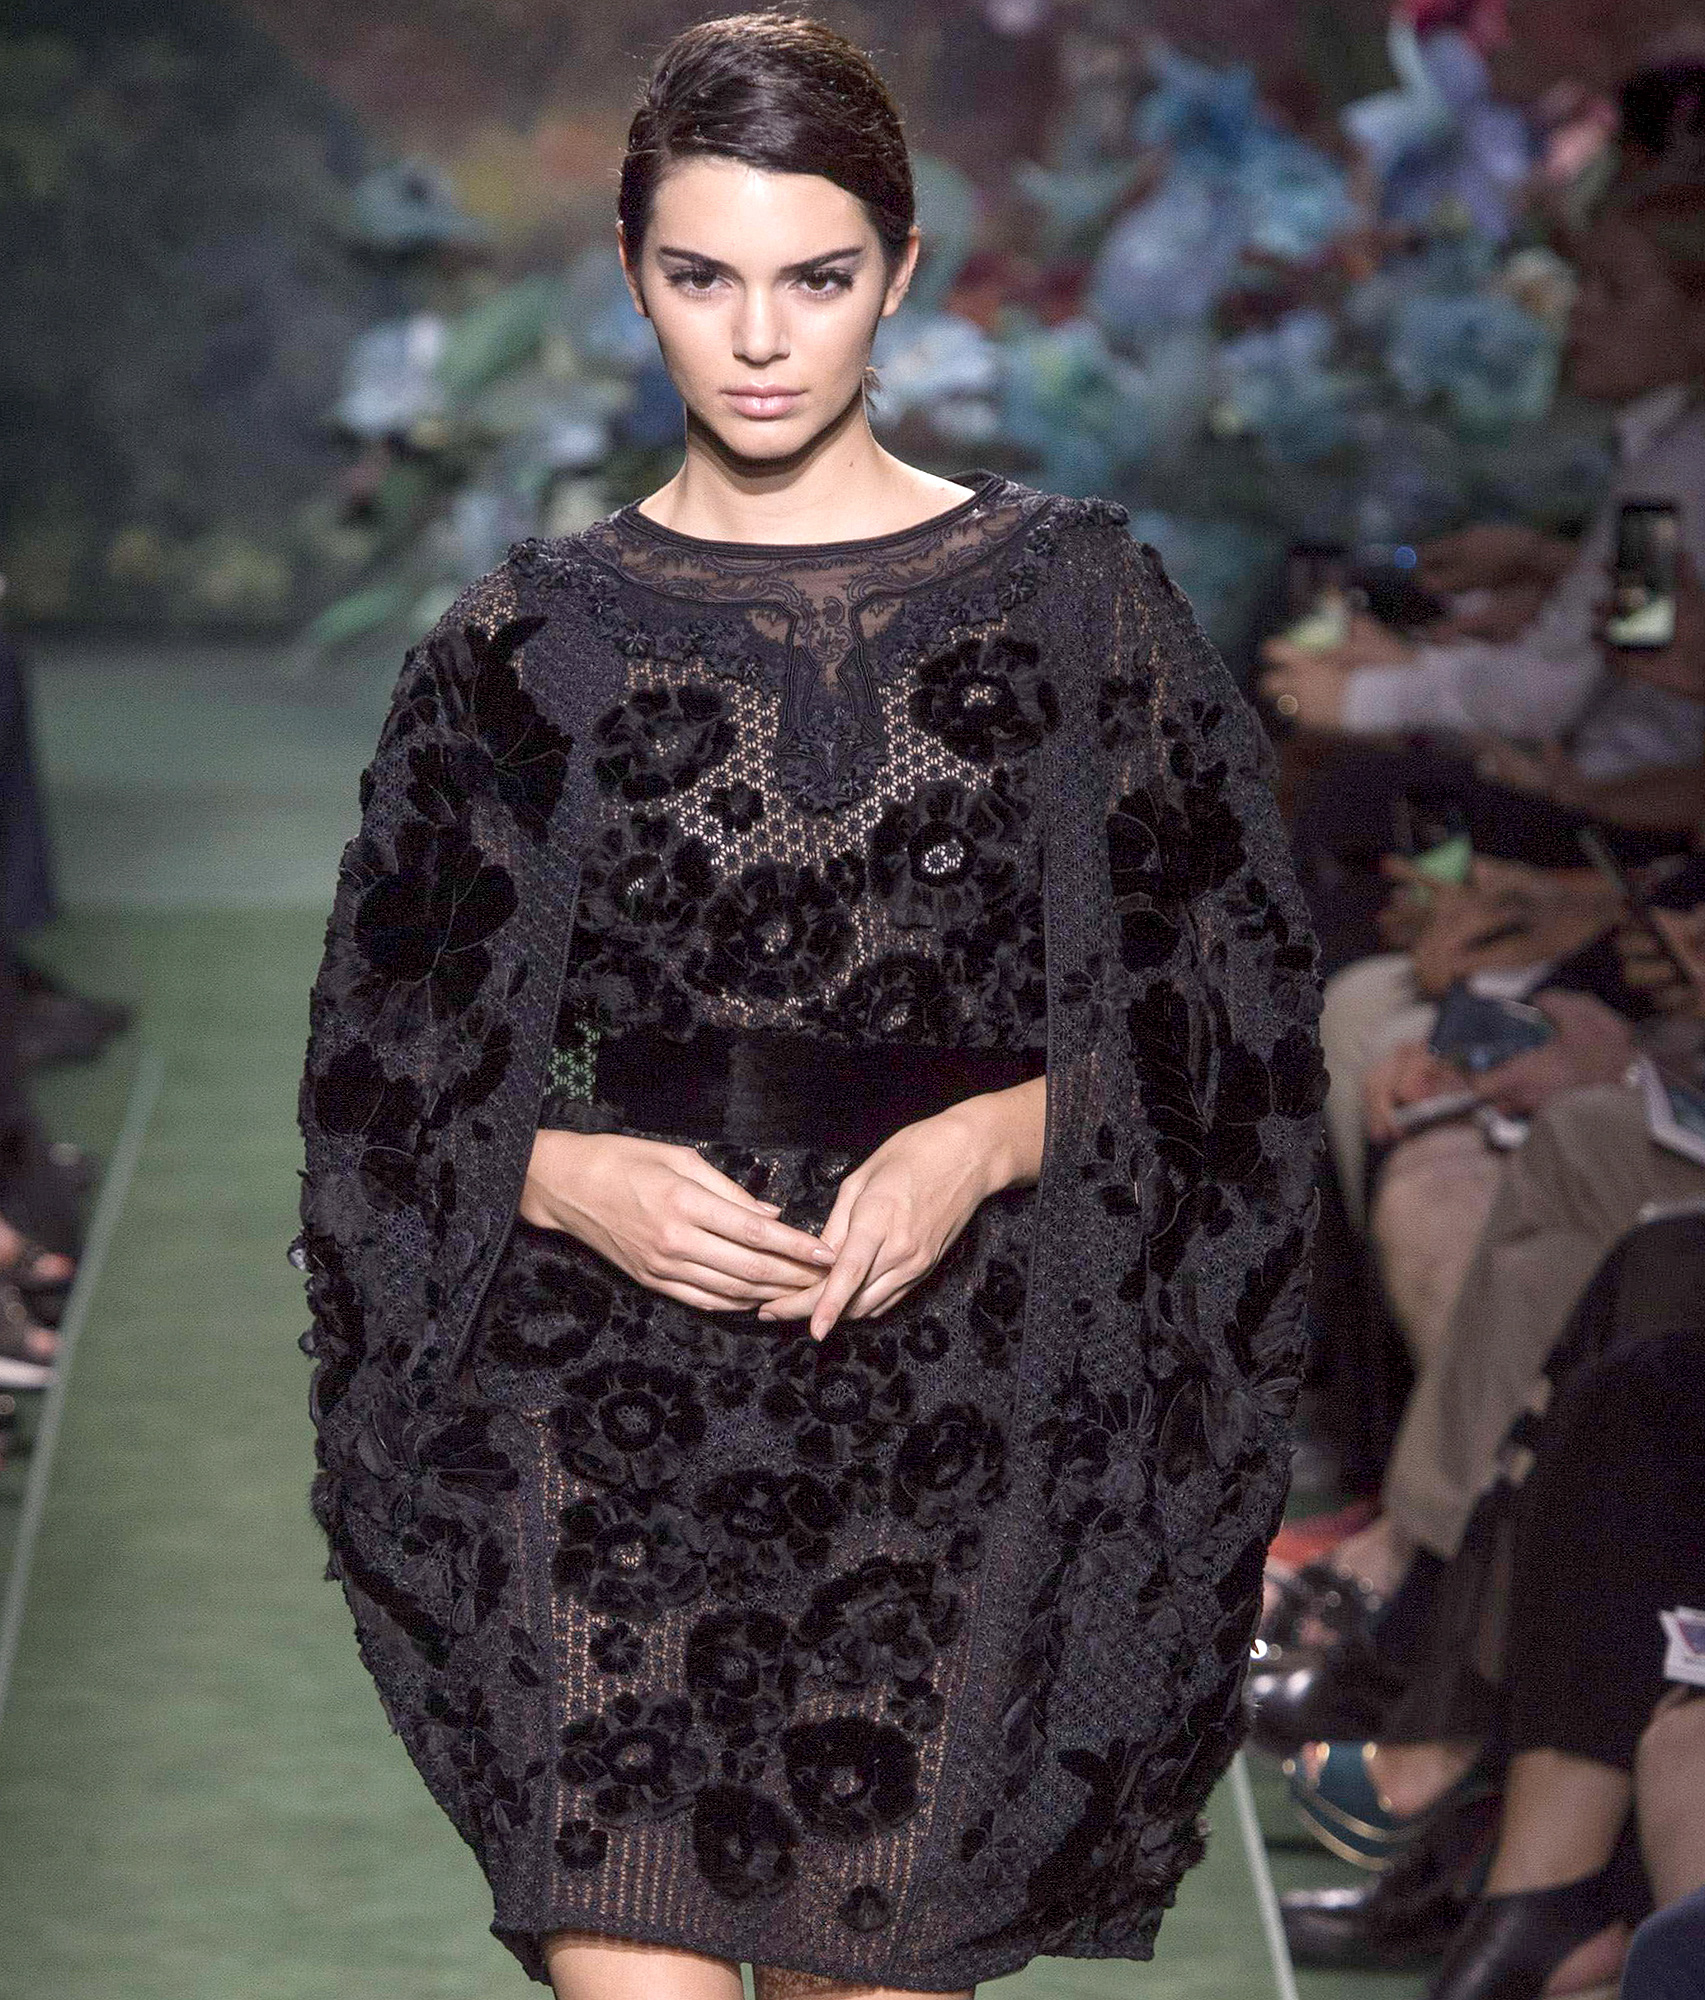 Kendall Jenner And Stella Maxwell Stunning On The Runway For Fendi USA ONLY